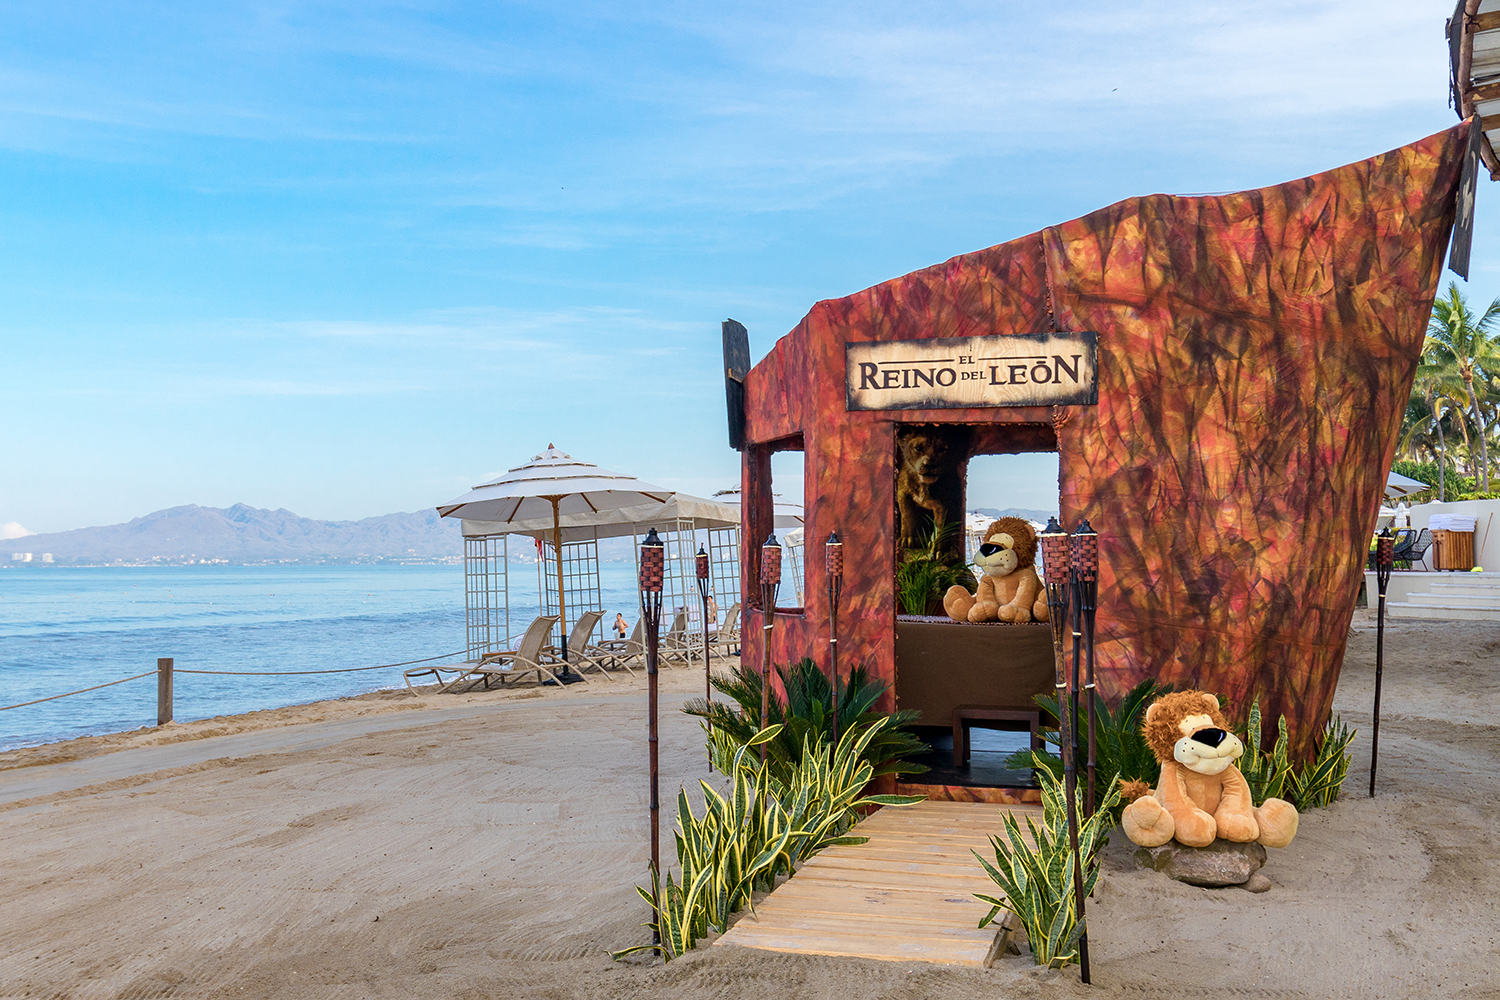 Grand Velas Riviera Nayarit is offering kids ages 4-12 a Hakuna Matata Massage in an oceanfront Lion King-themed spa cabana.